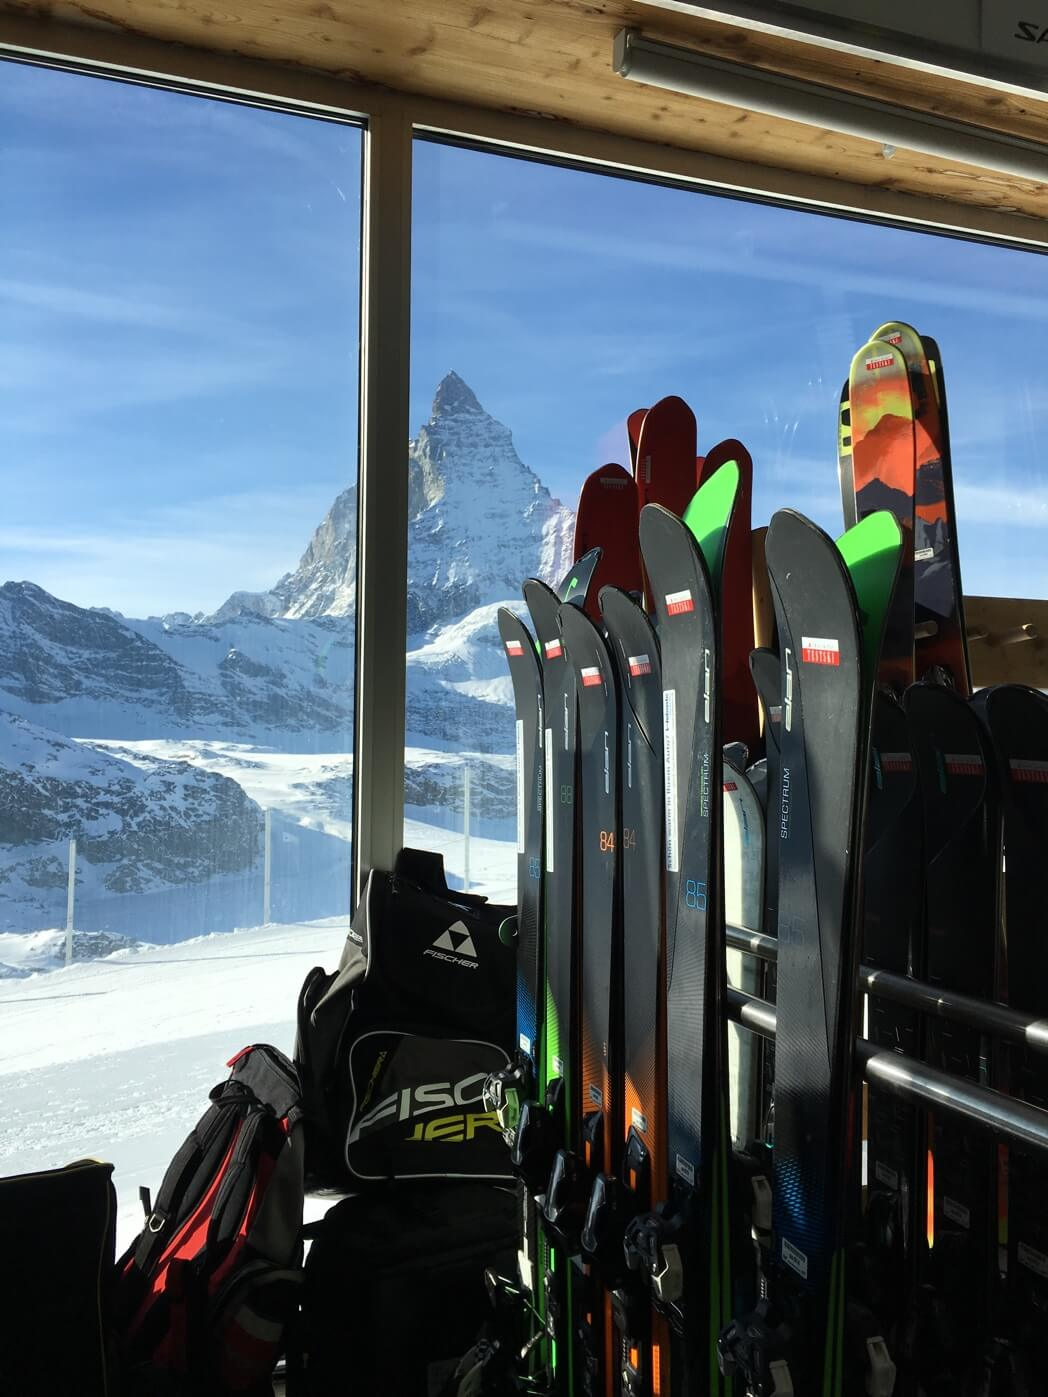 Ski-Test in Zermatt am Gletscher